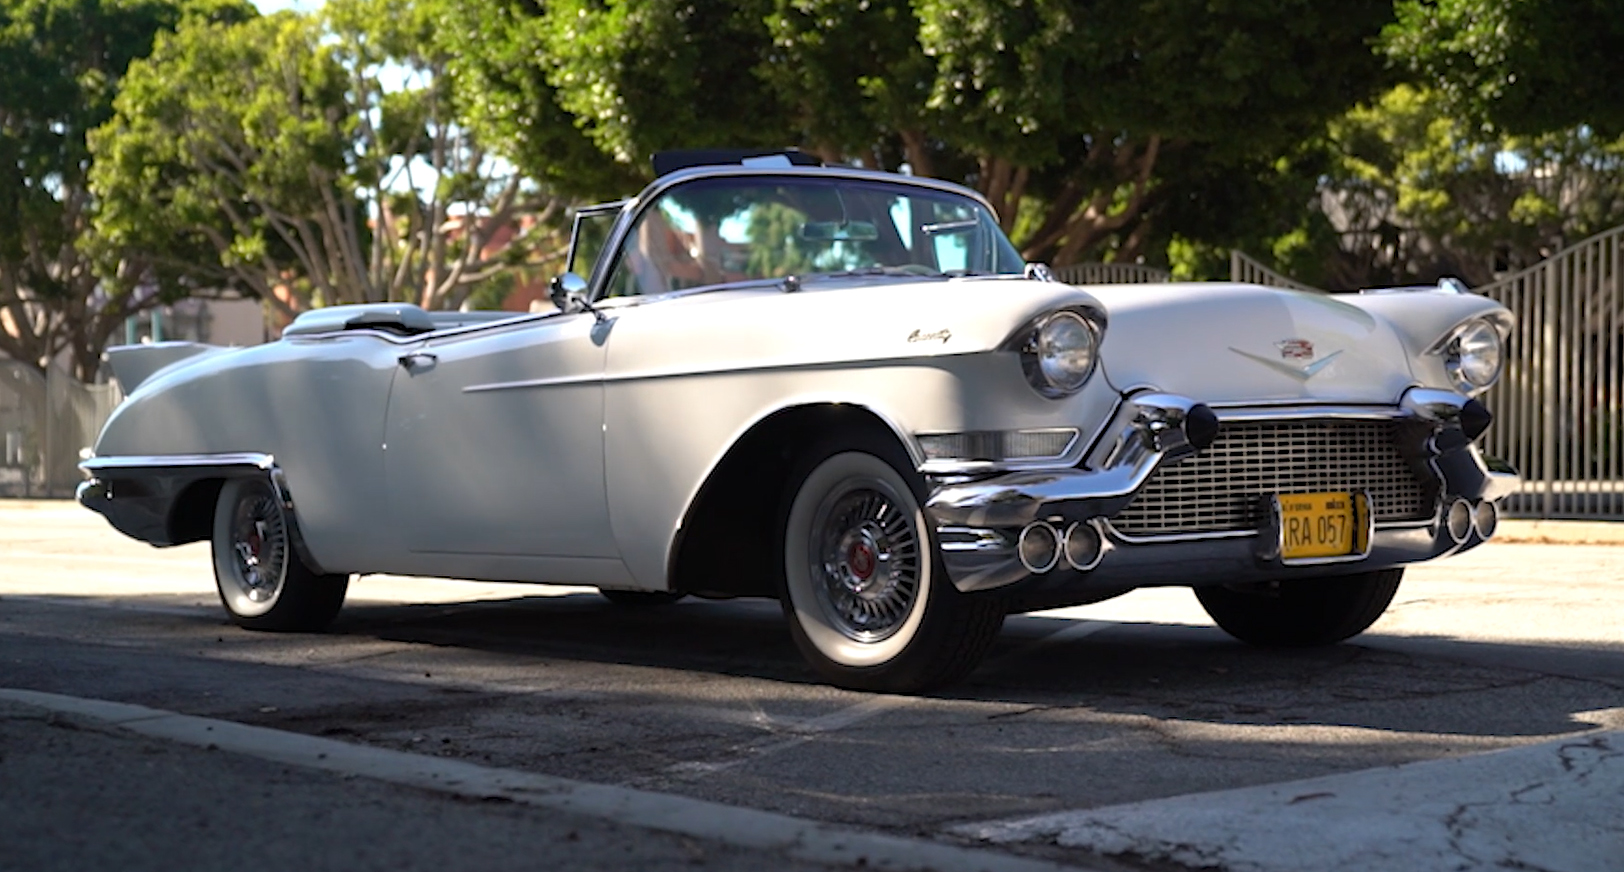 There are few things that scream classic Hollywood more than a classic Cadillac.